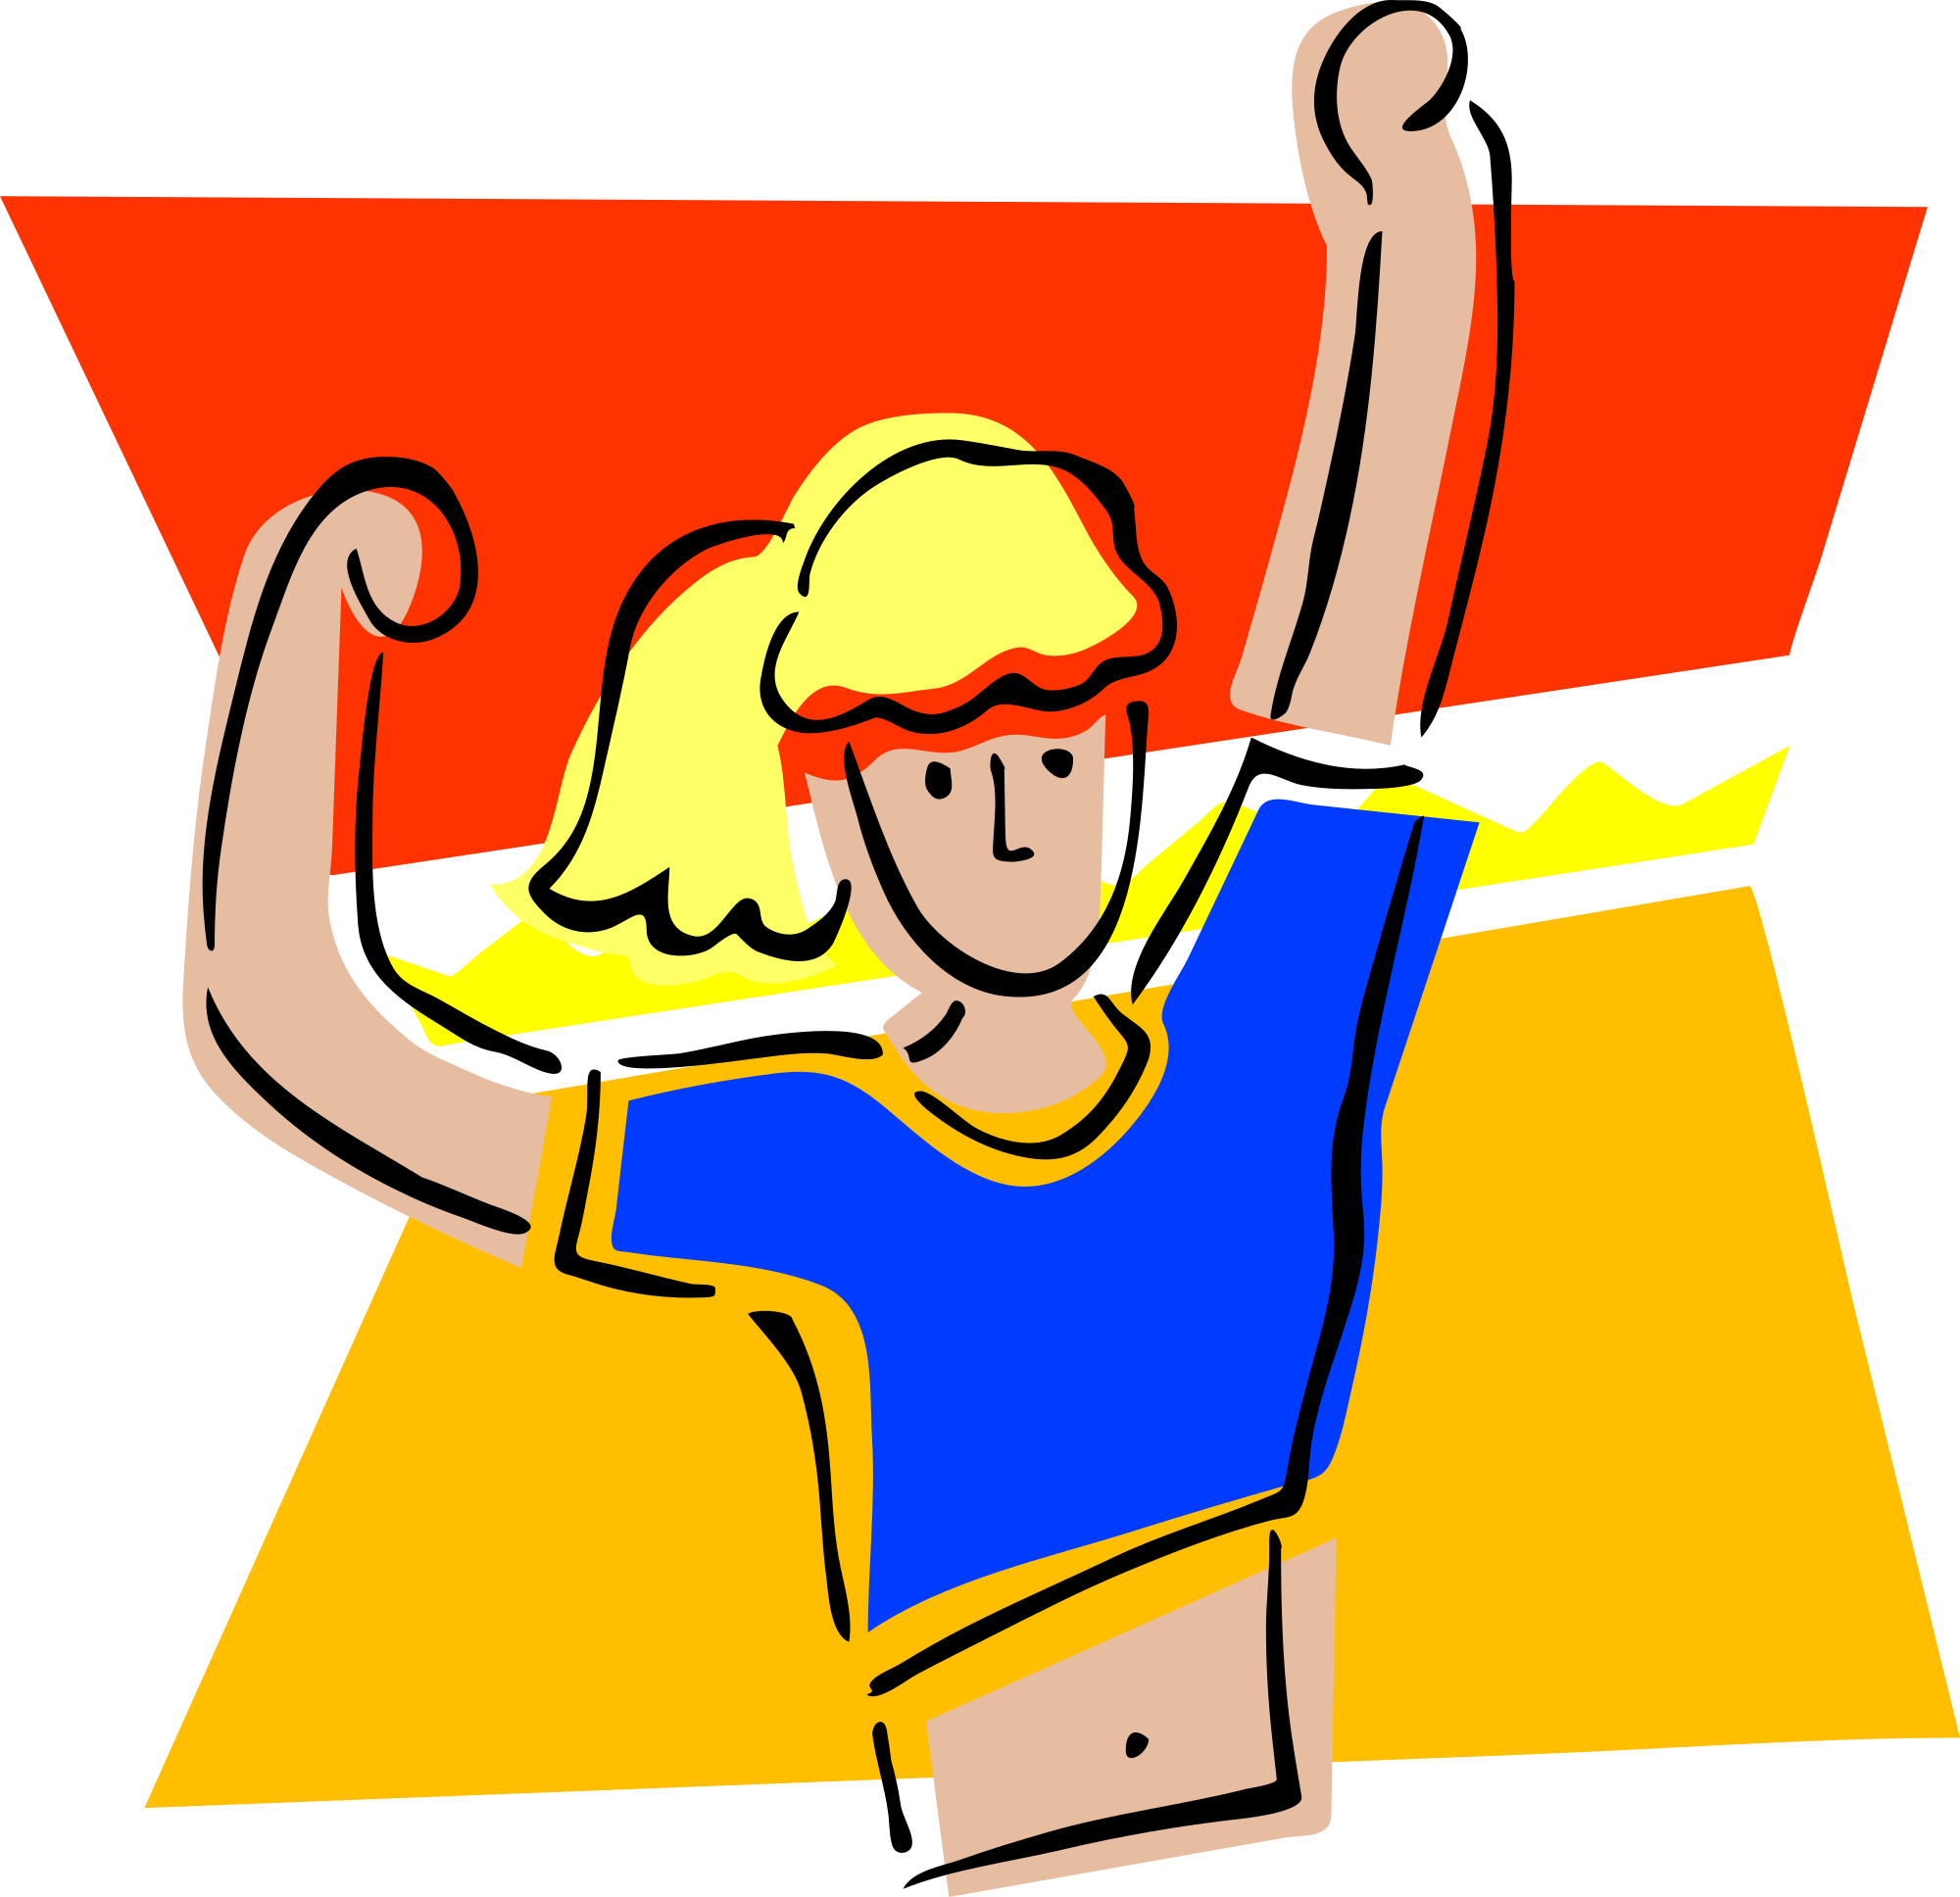 Gym clipart strong boy. Physical fitness group with